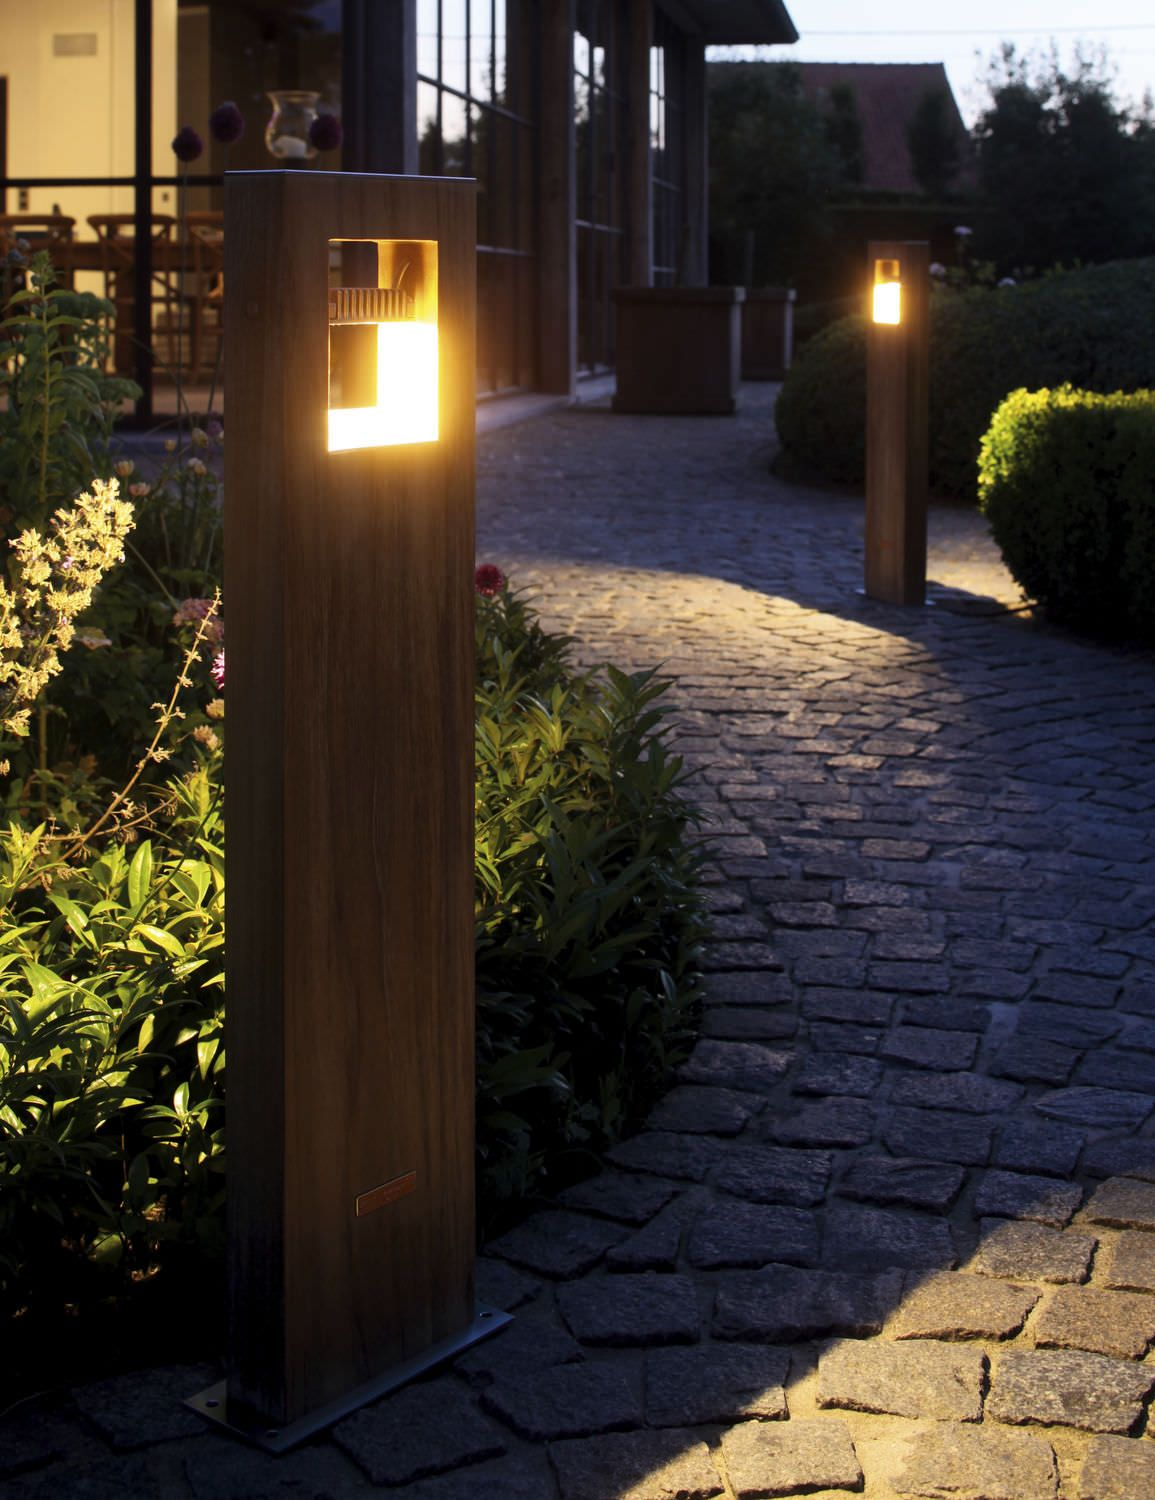 Garden Bollard Light Contemporary Metal Led Log 70 Royal Botania Bollard Lighting Landscape Lighting Driveway Lighting